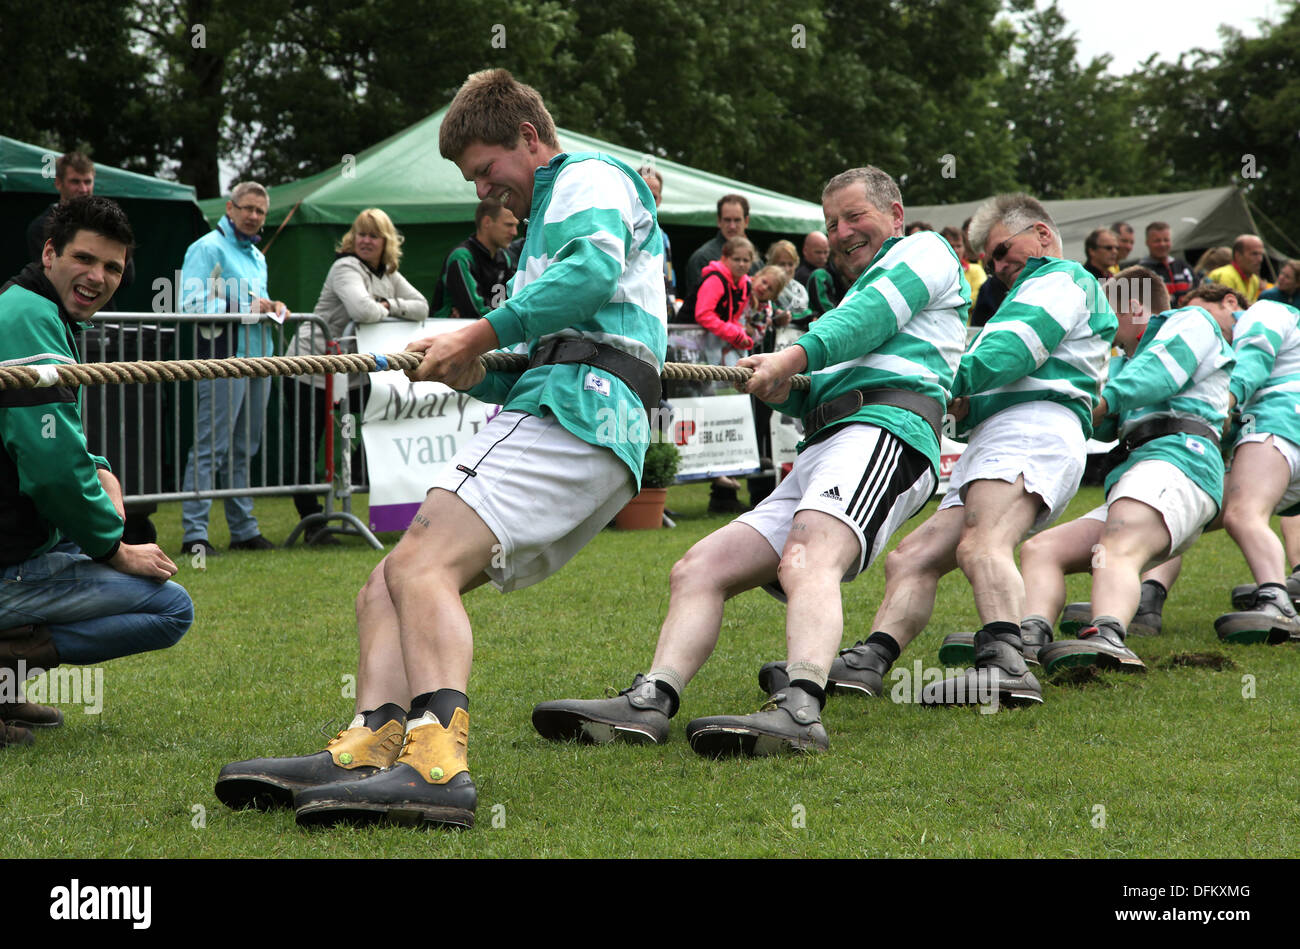 Tug of war,rope pulling,a sport that pits two teams against each other in a test of strength.Netherlands - Stock Image